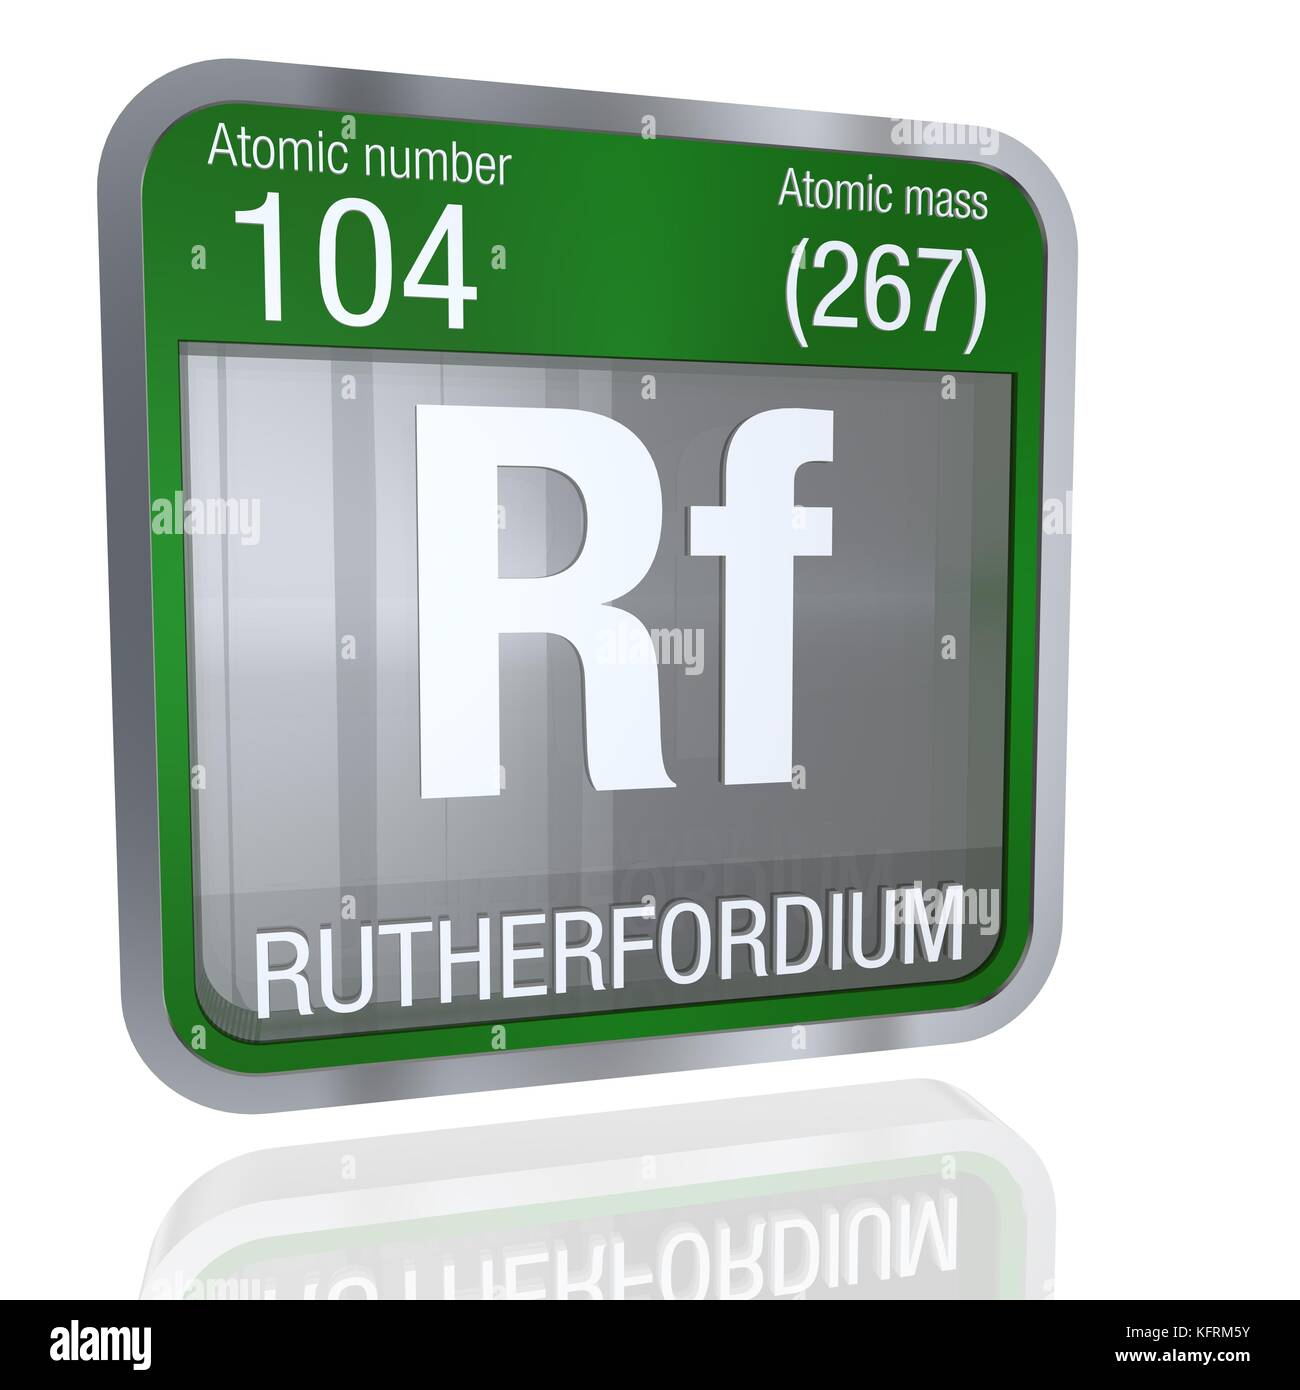 Rutherfordium symbol  in square shape with metallic border and transparent background with reflection on the floor. Stock Photo